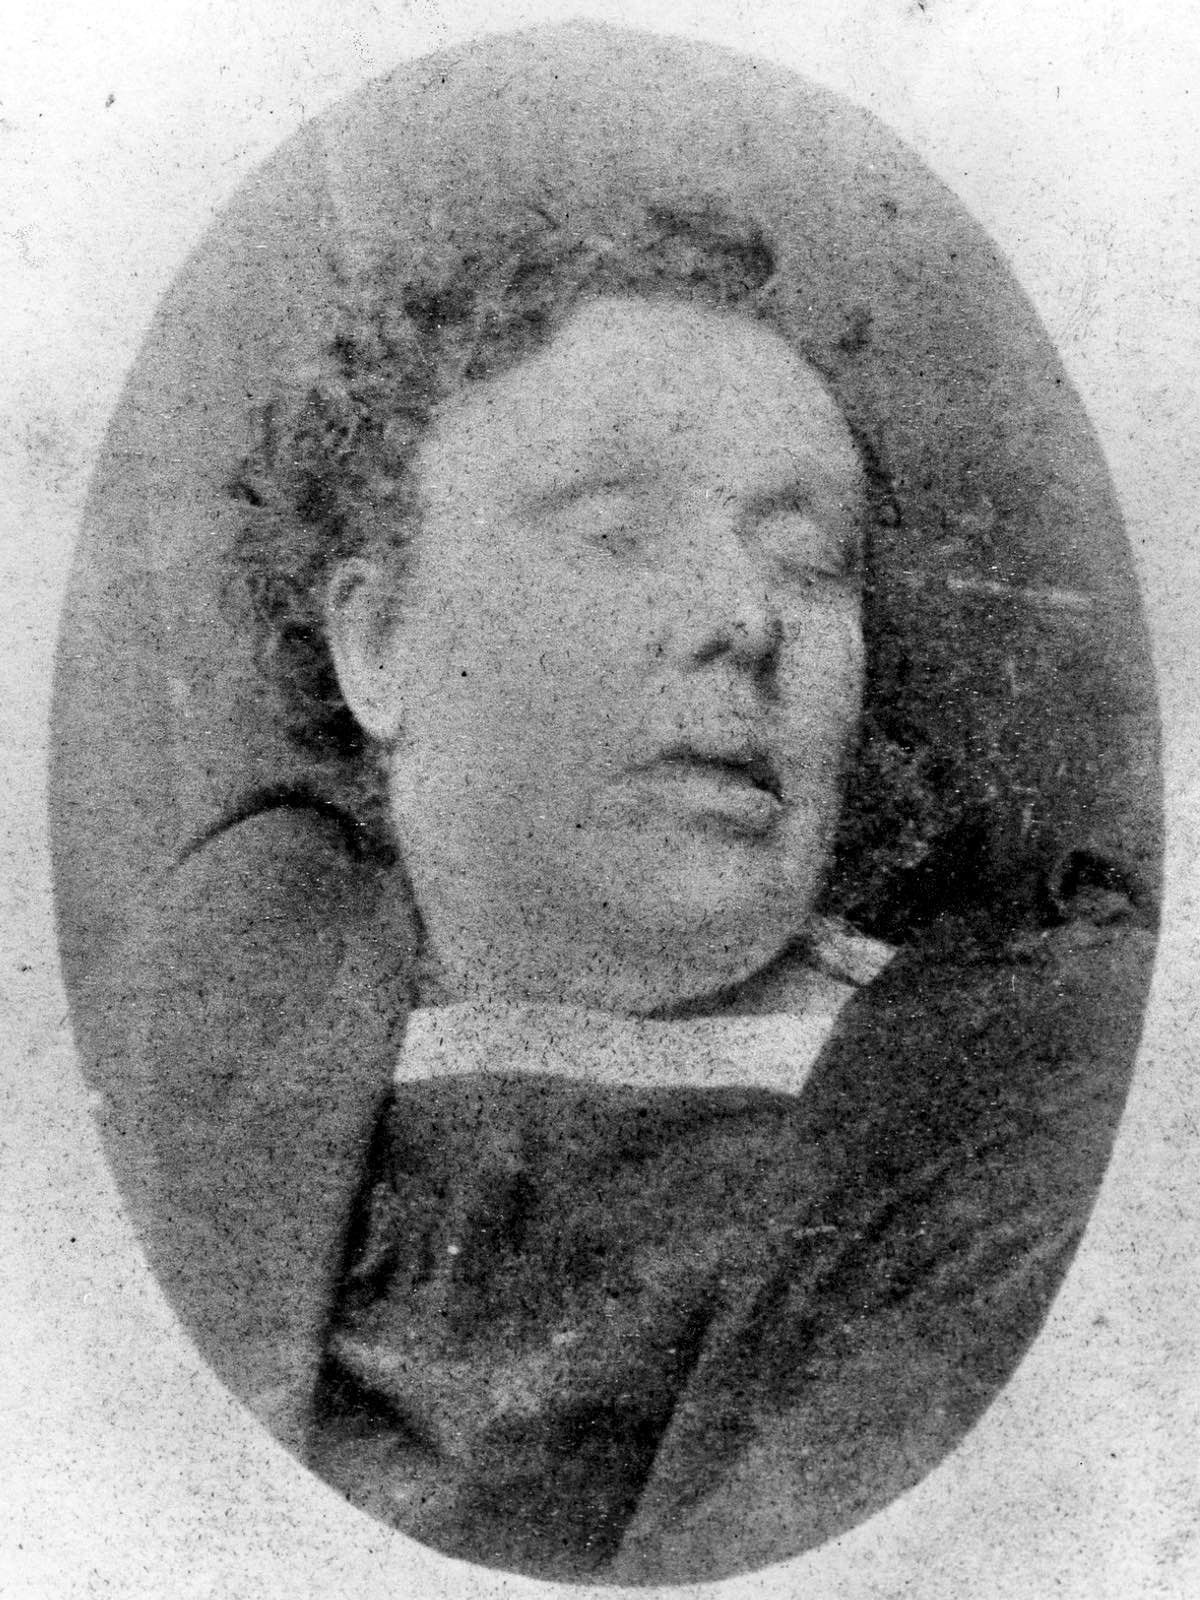 Annie Chapman, like all the Ripper's victims, was killed with extreme violence.